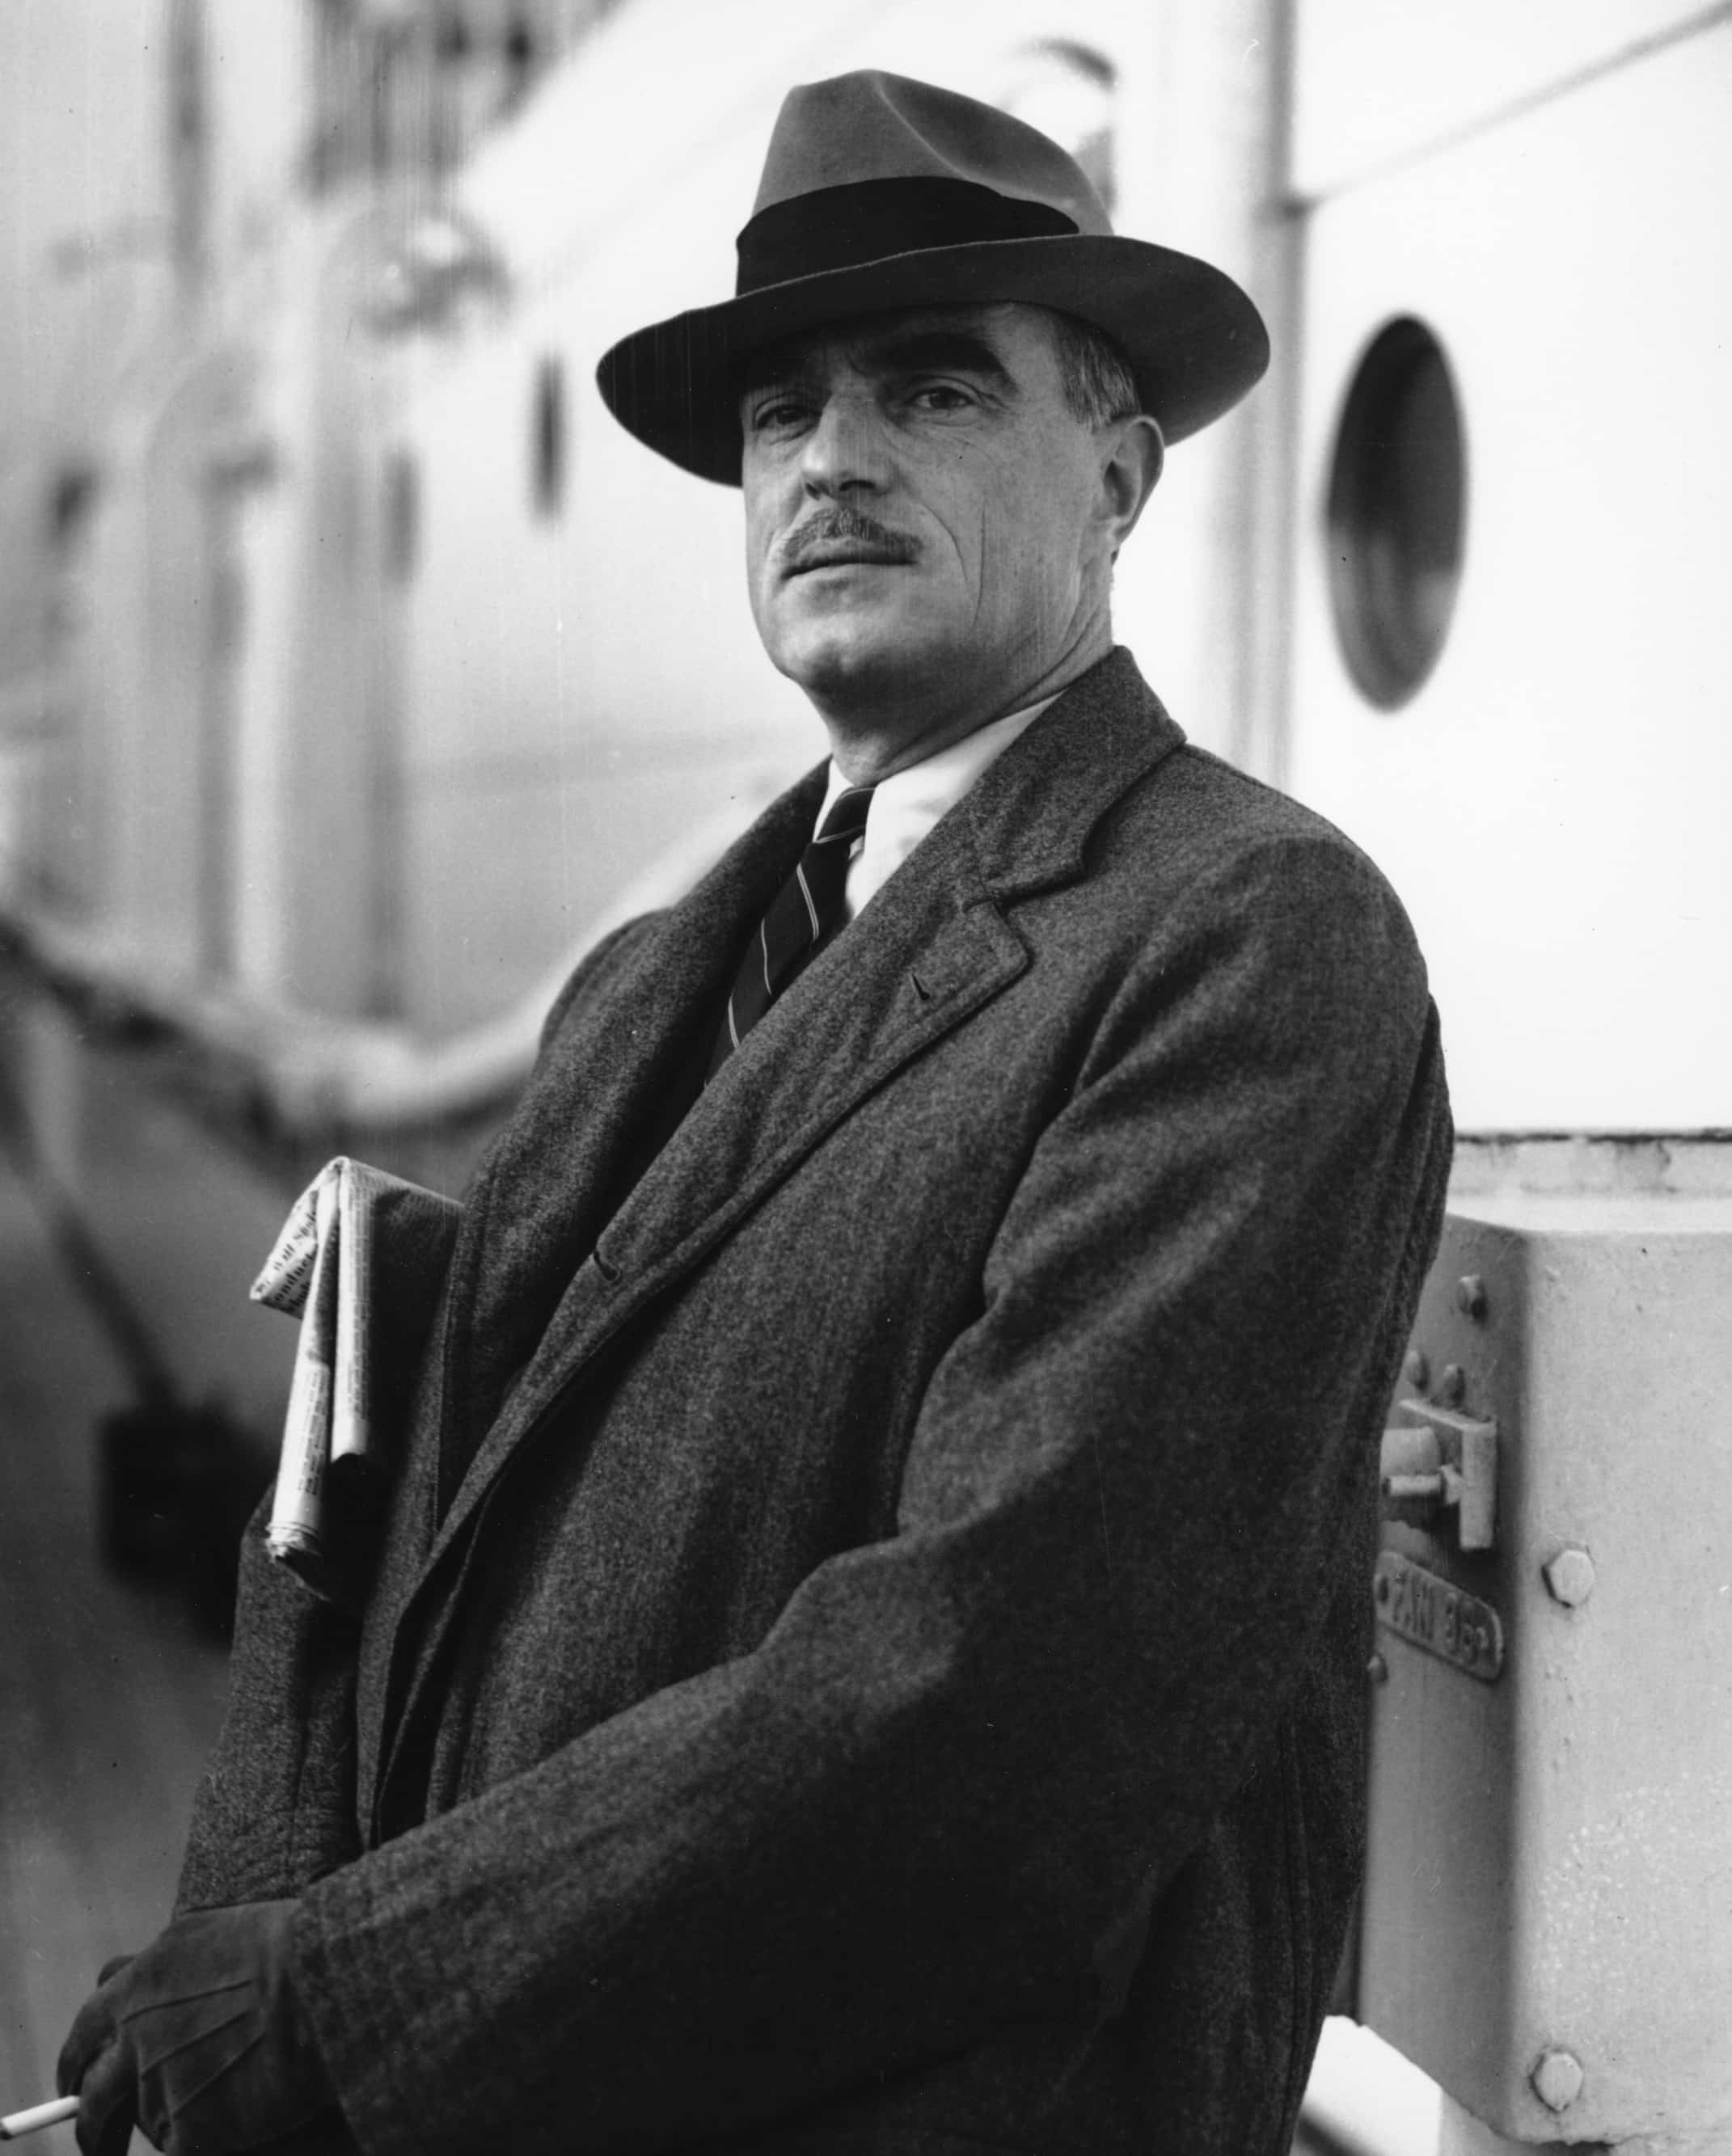 an analysis of our town by thornton wilder A summary of themes in thornton wilder's our town learn exactly what happened in this chapter, scene, or section of our town and what it means perfect for acing essays, tests, and quizzes.